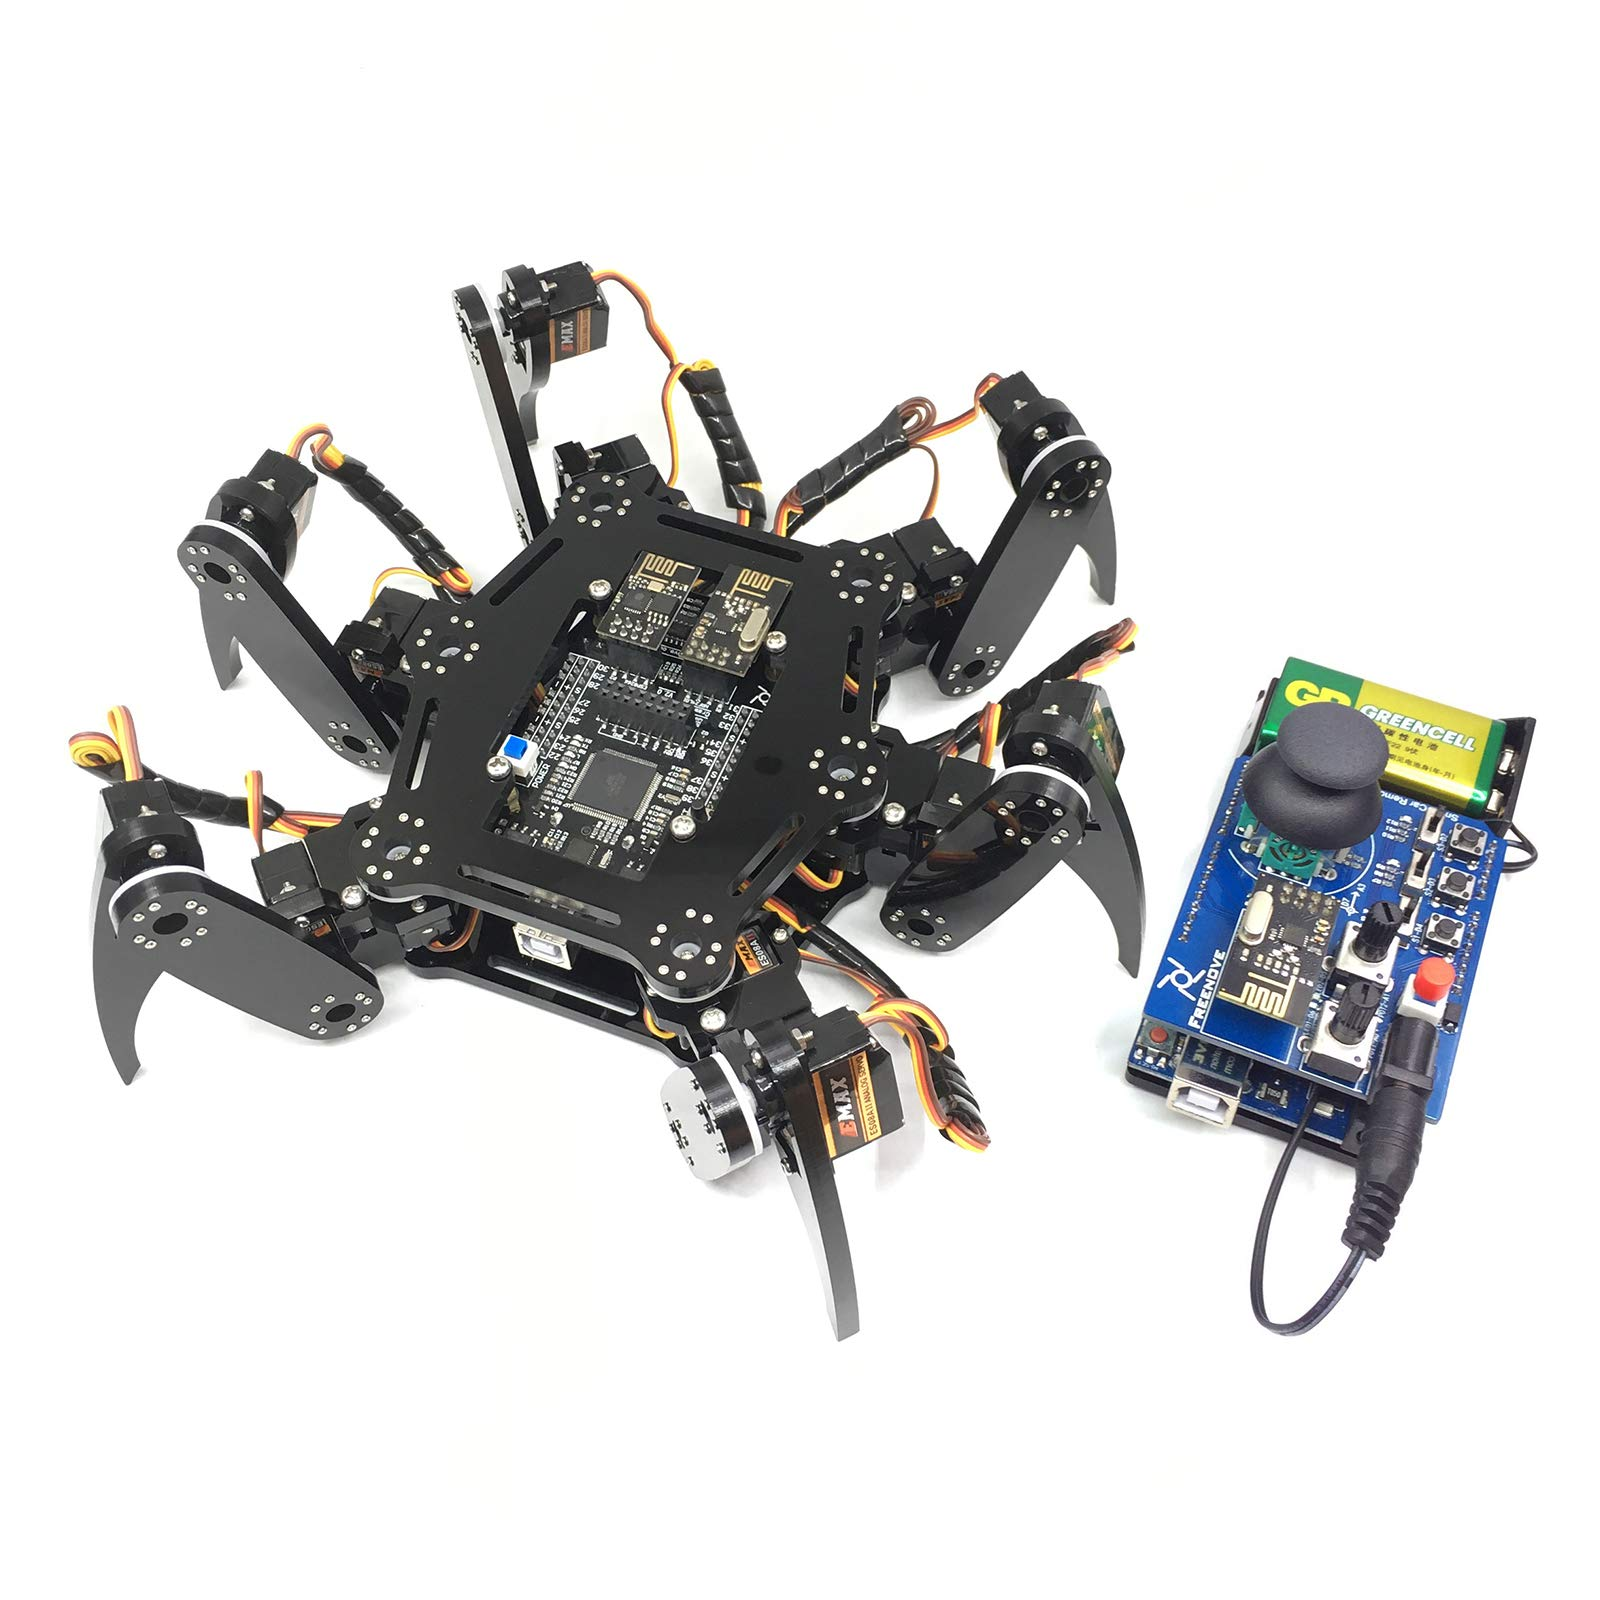 Freenove Hexapod Robot Kit with Remote Control, Compatible with Arduino Raspberry Pi Processing, Spider Walking Crawling STEAM STEM Project by Freenove (Image #1)